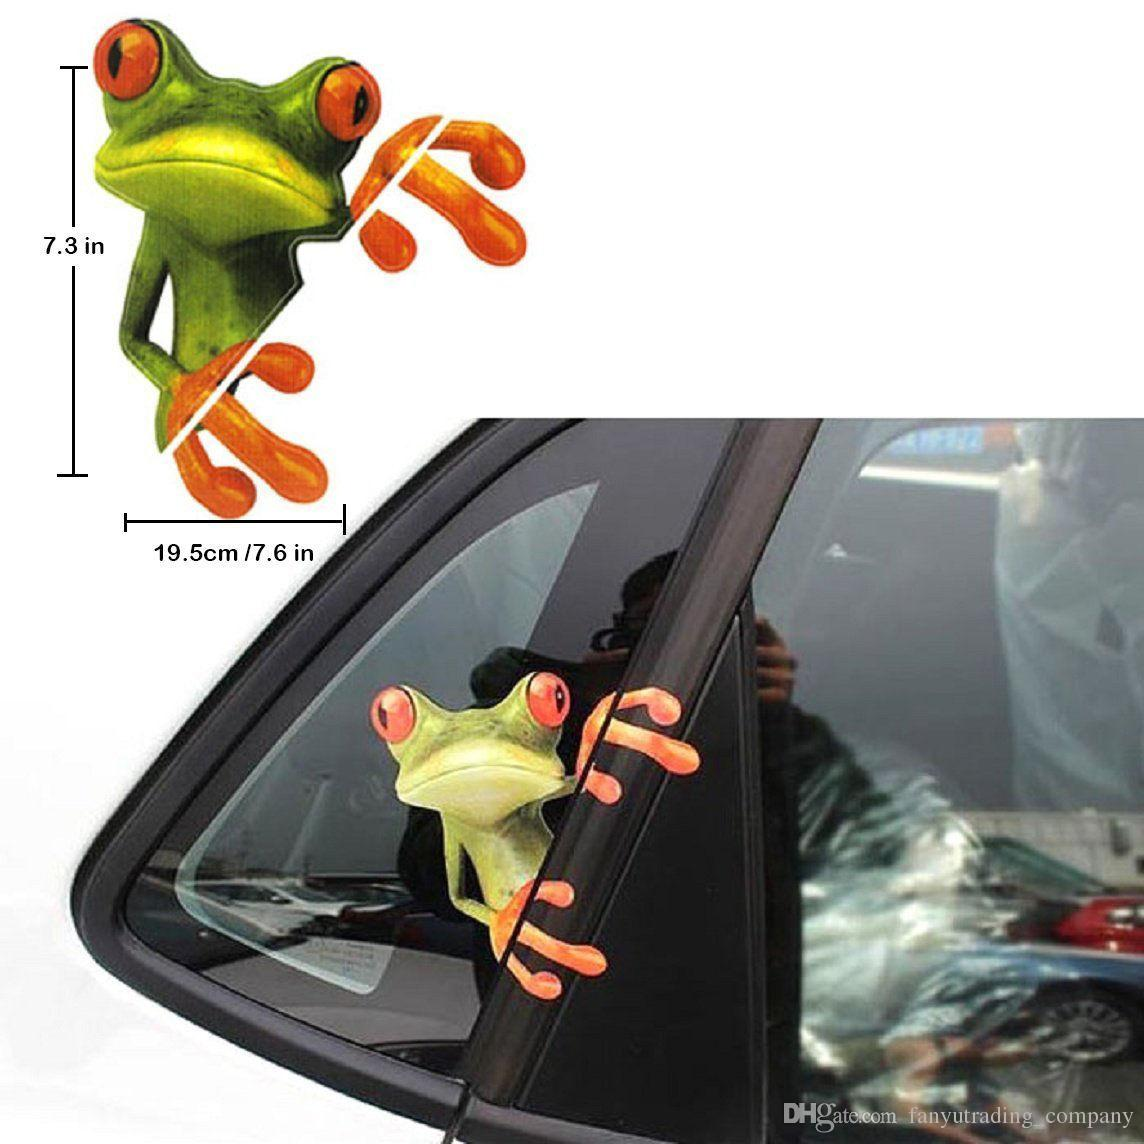 2019 2017 Cute 3D Peep Frog Funny Car Stickers Truck Window Vinyl Decal  Graphics Sticker From Fanyutrading_company, $0 9 | DHgate Com